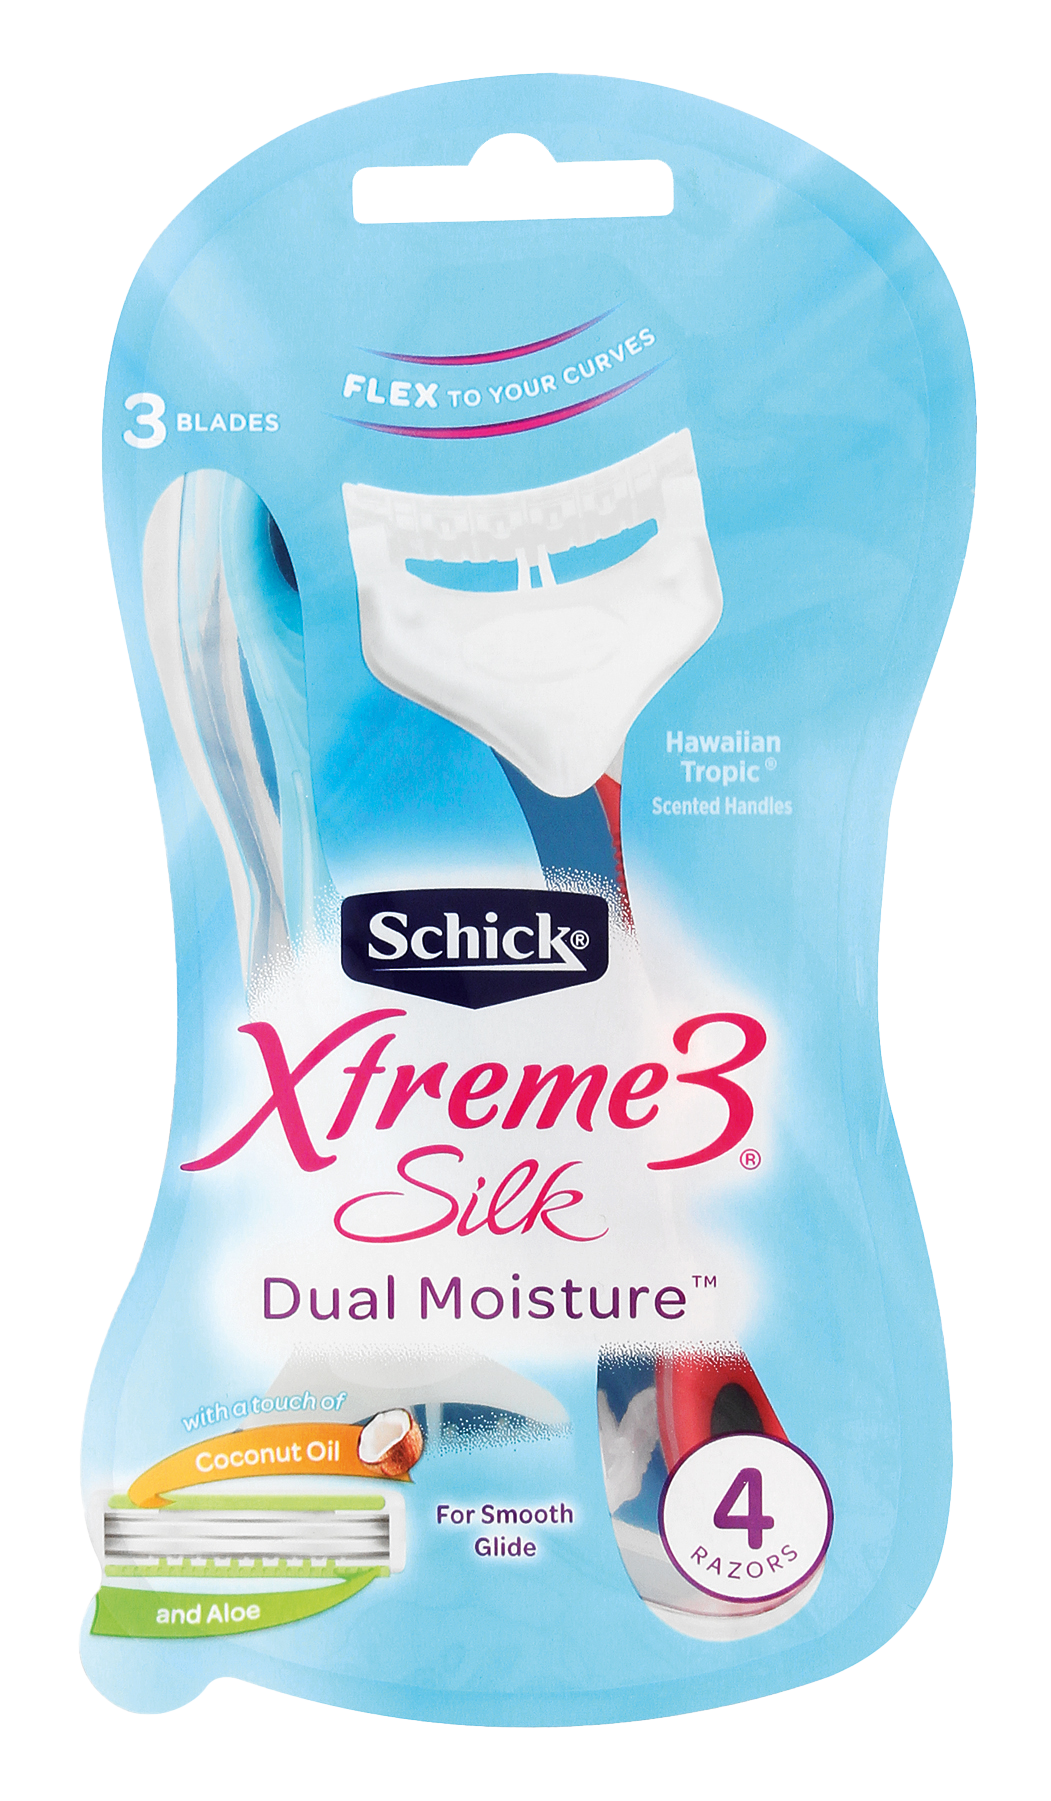 Xtreme 3 Silk Disposables for Women